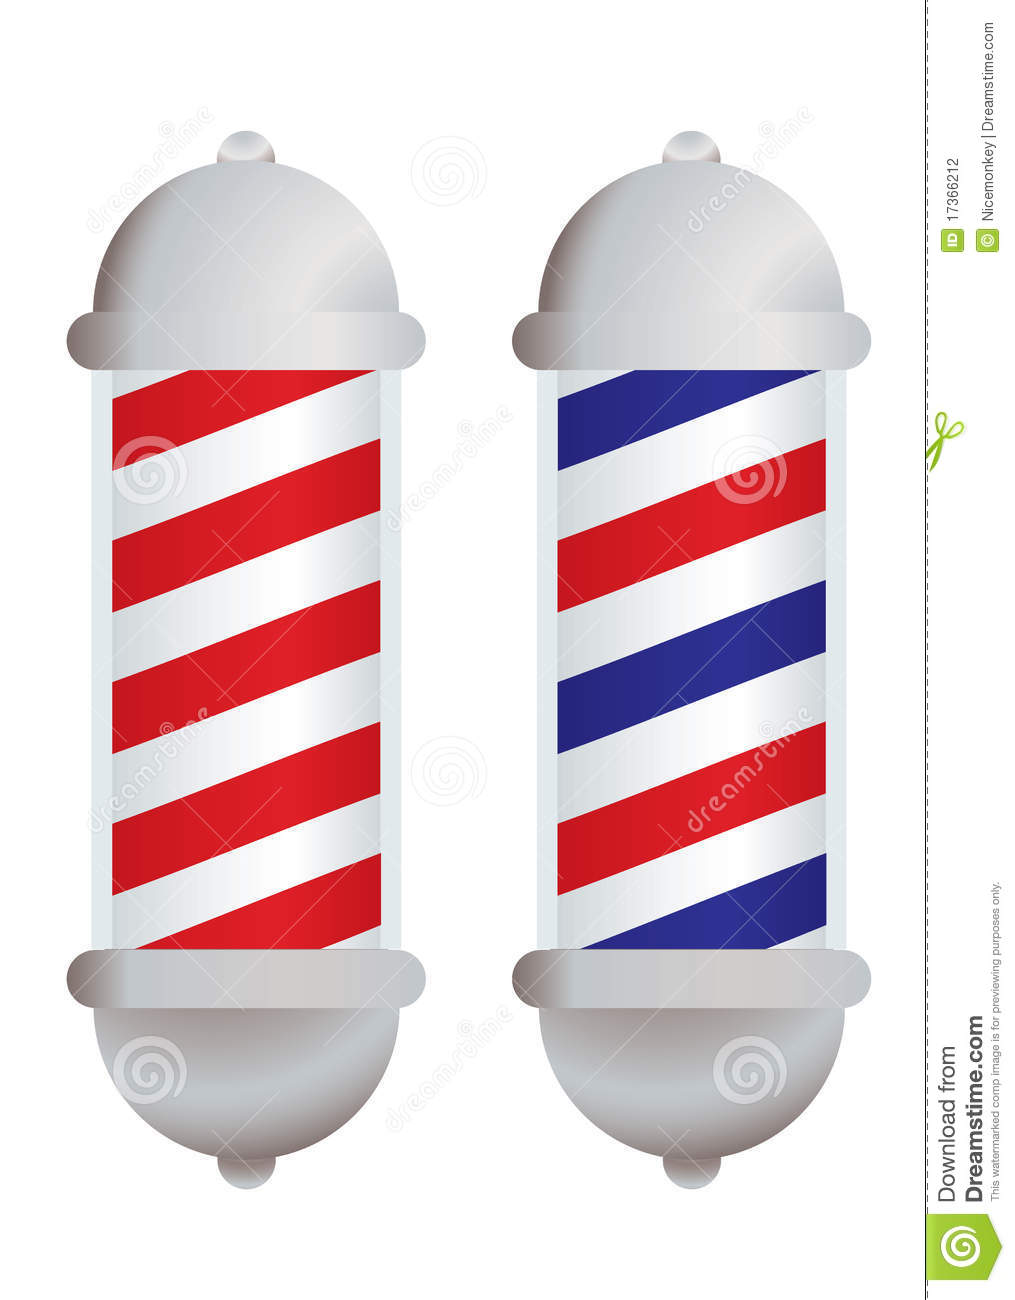 Red and white stripe barbers pole with silver elements.